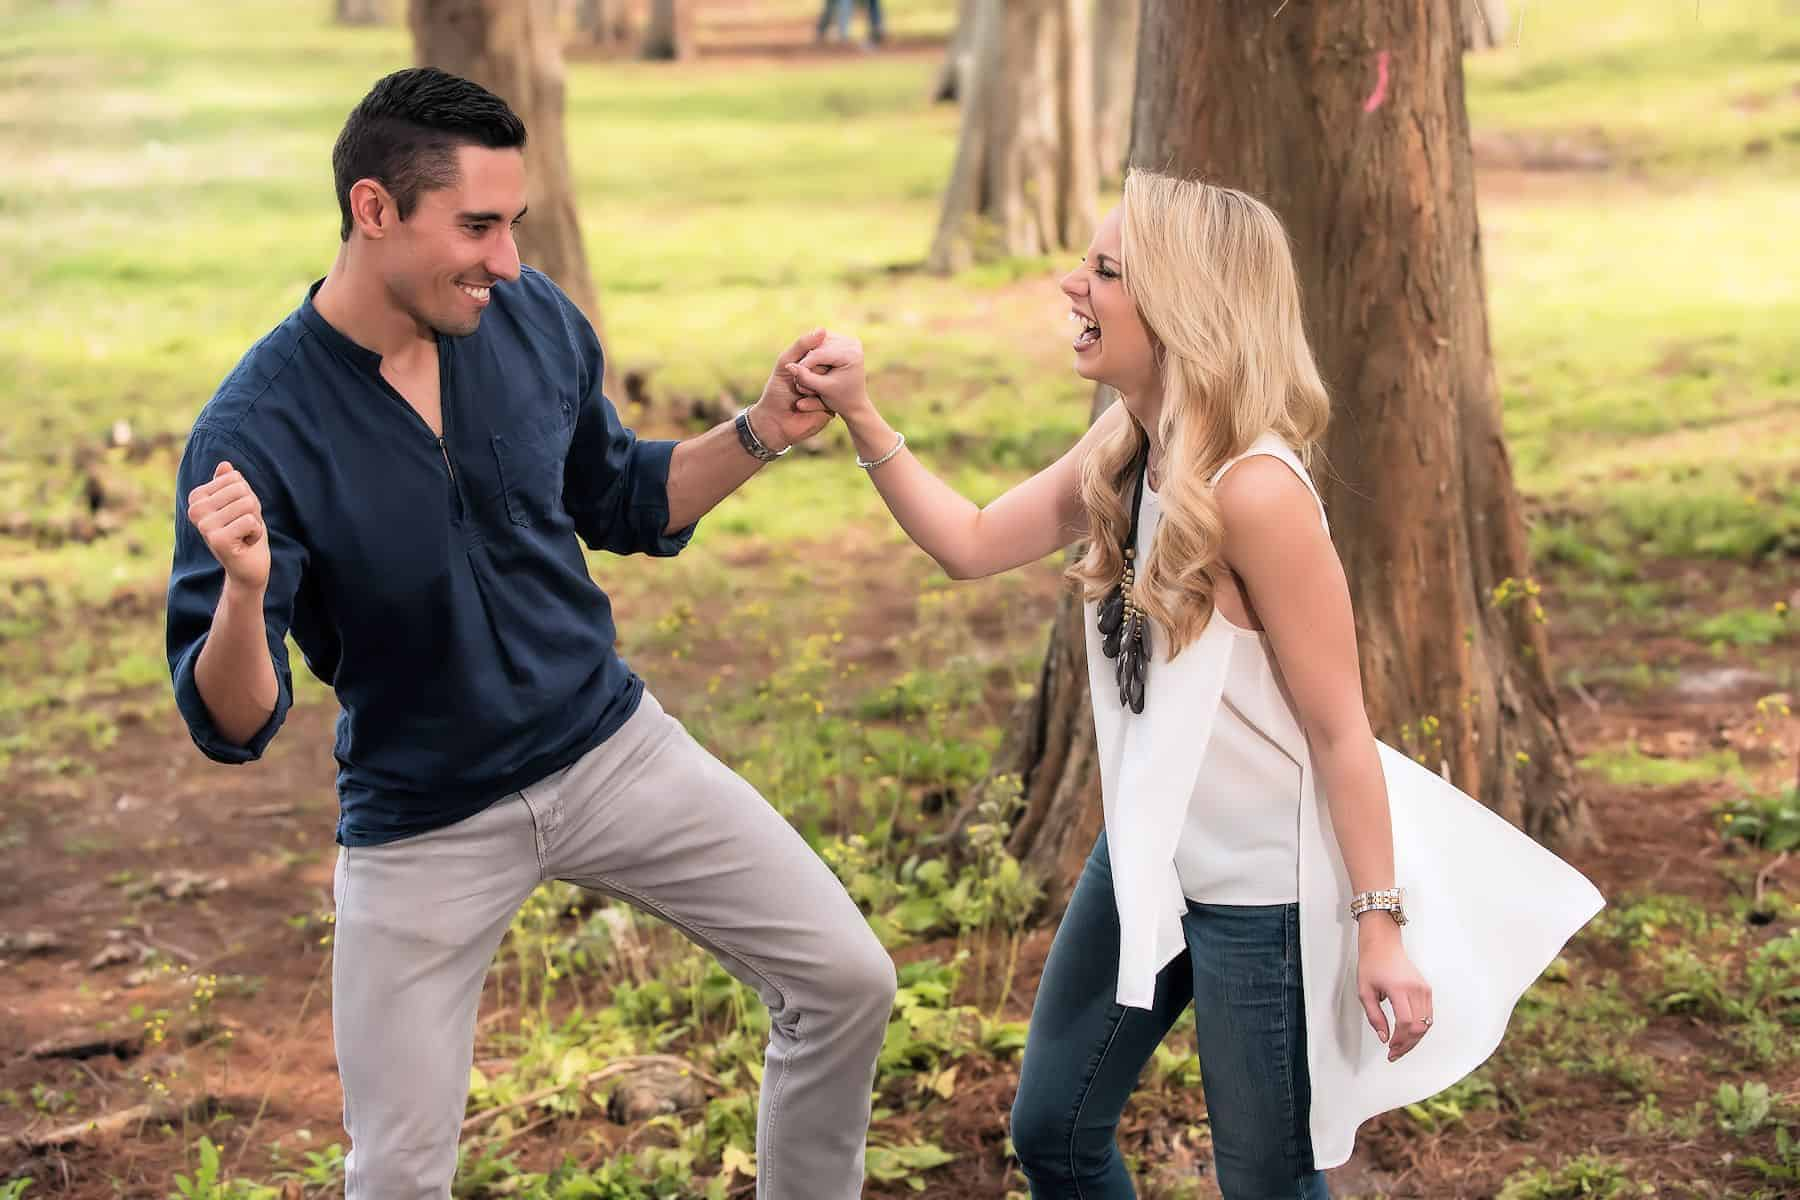 Orlando Park Engagement Photos at Bill Frederick Park engaged couples